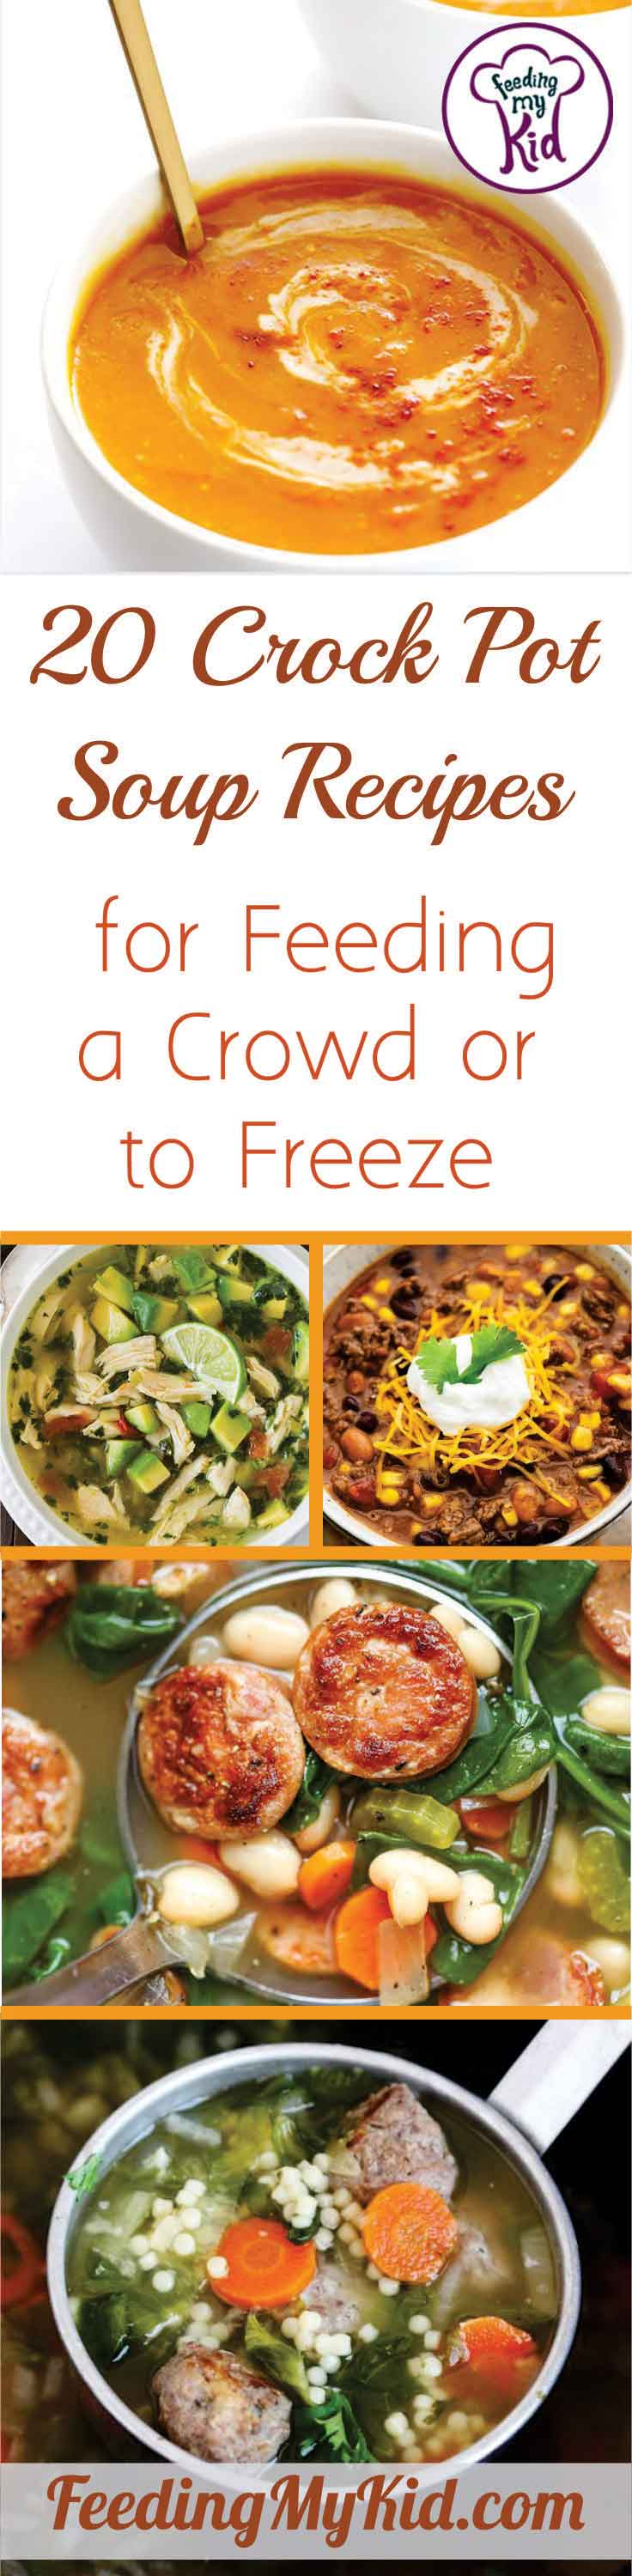 These crock pot soup recipes are perfect for feeding a large crowd or for freezing for later! You'll love the variety and ease of using a slow cooker.